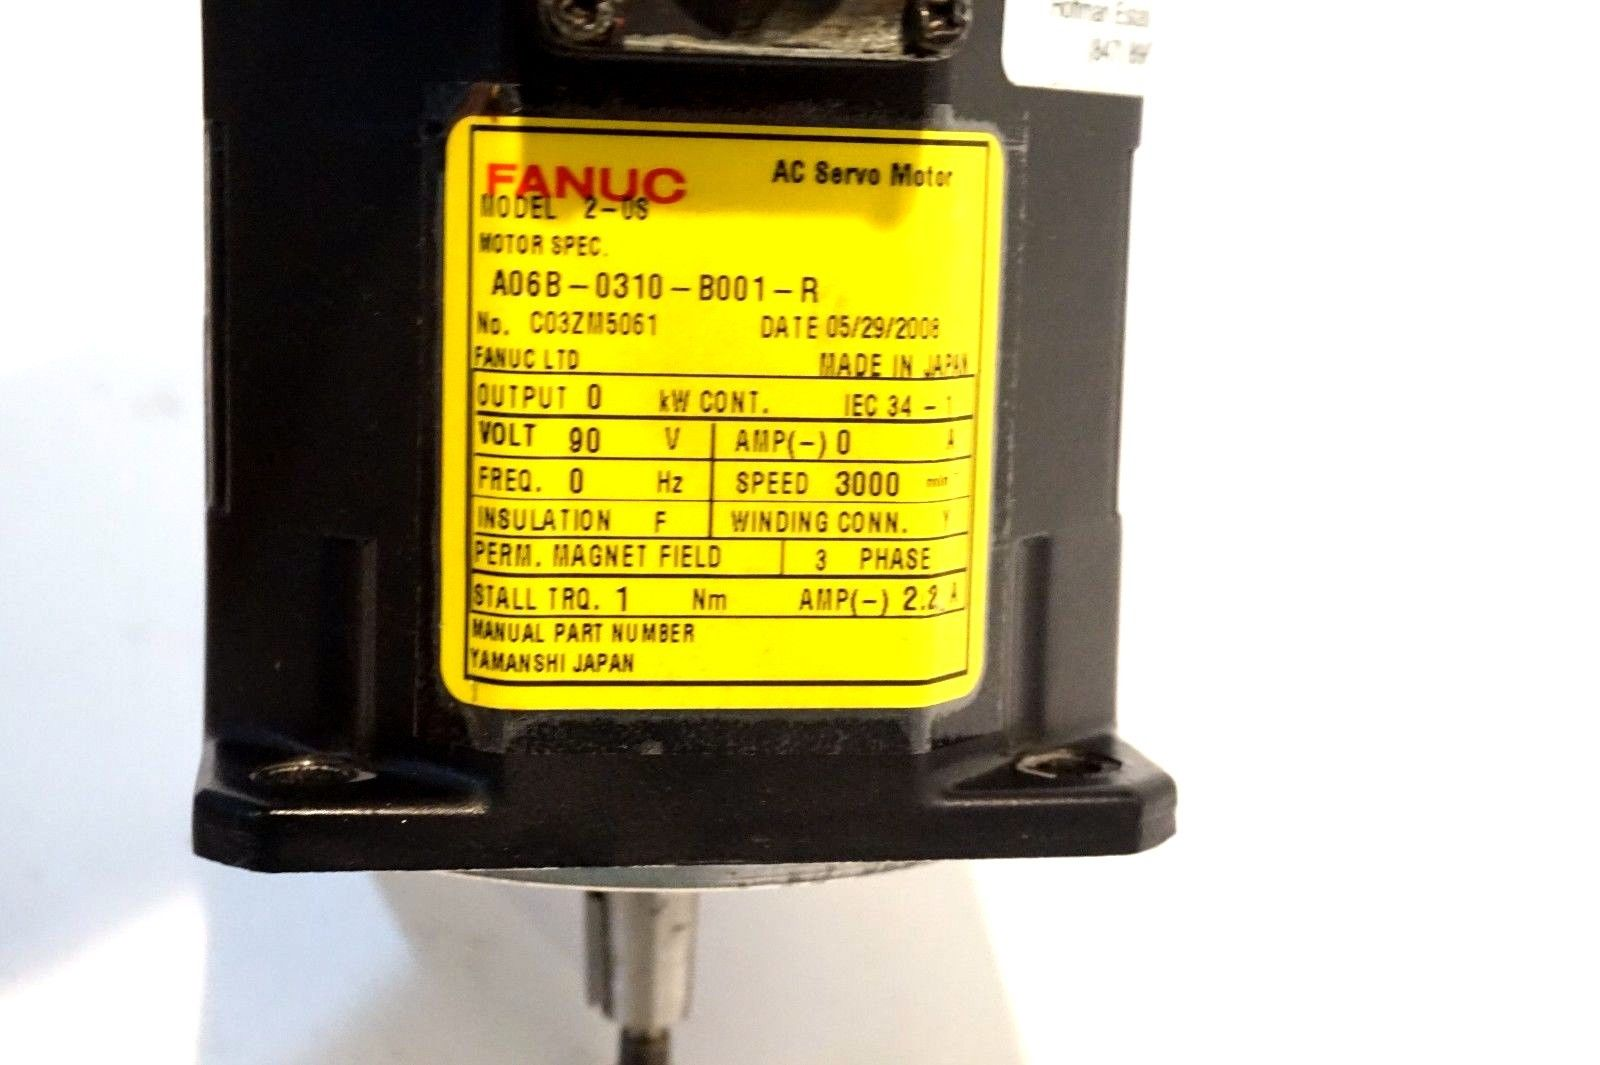 Fanuc dc servo manual